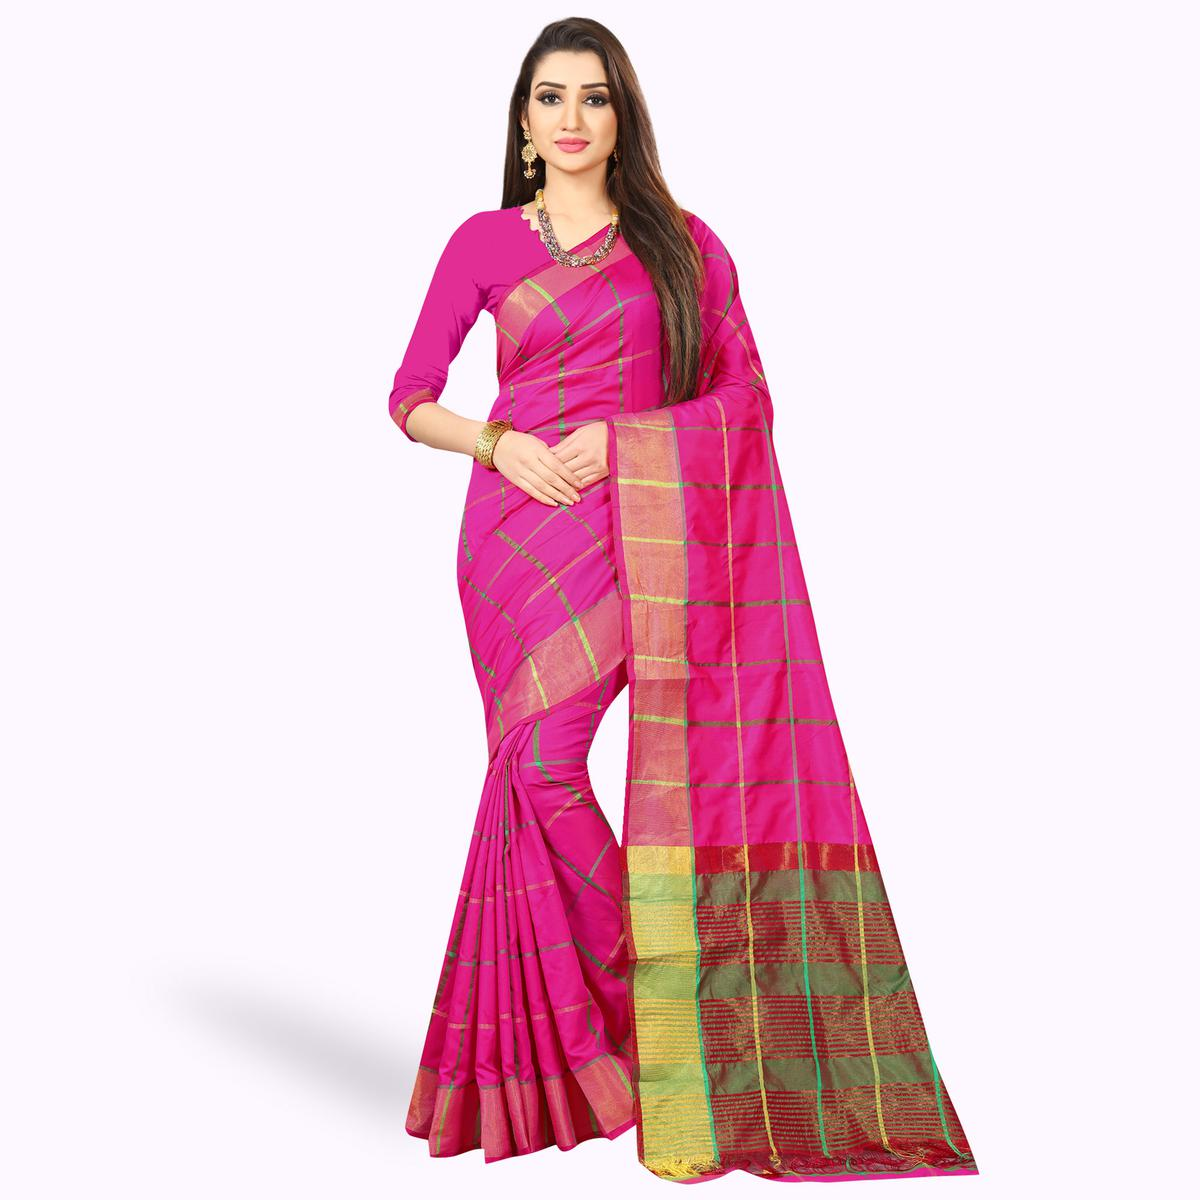 Groovy Pink Colored Festive Wear Woven Silk Saree